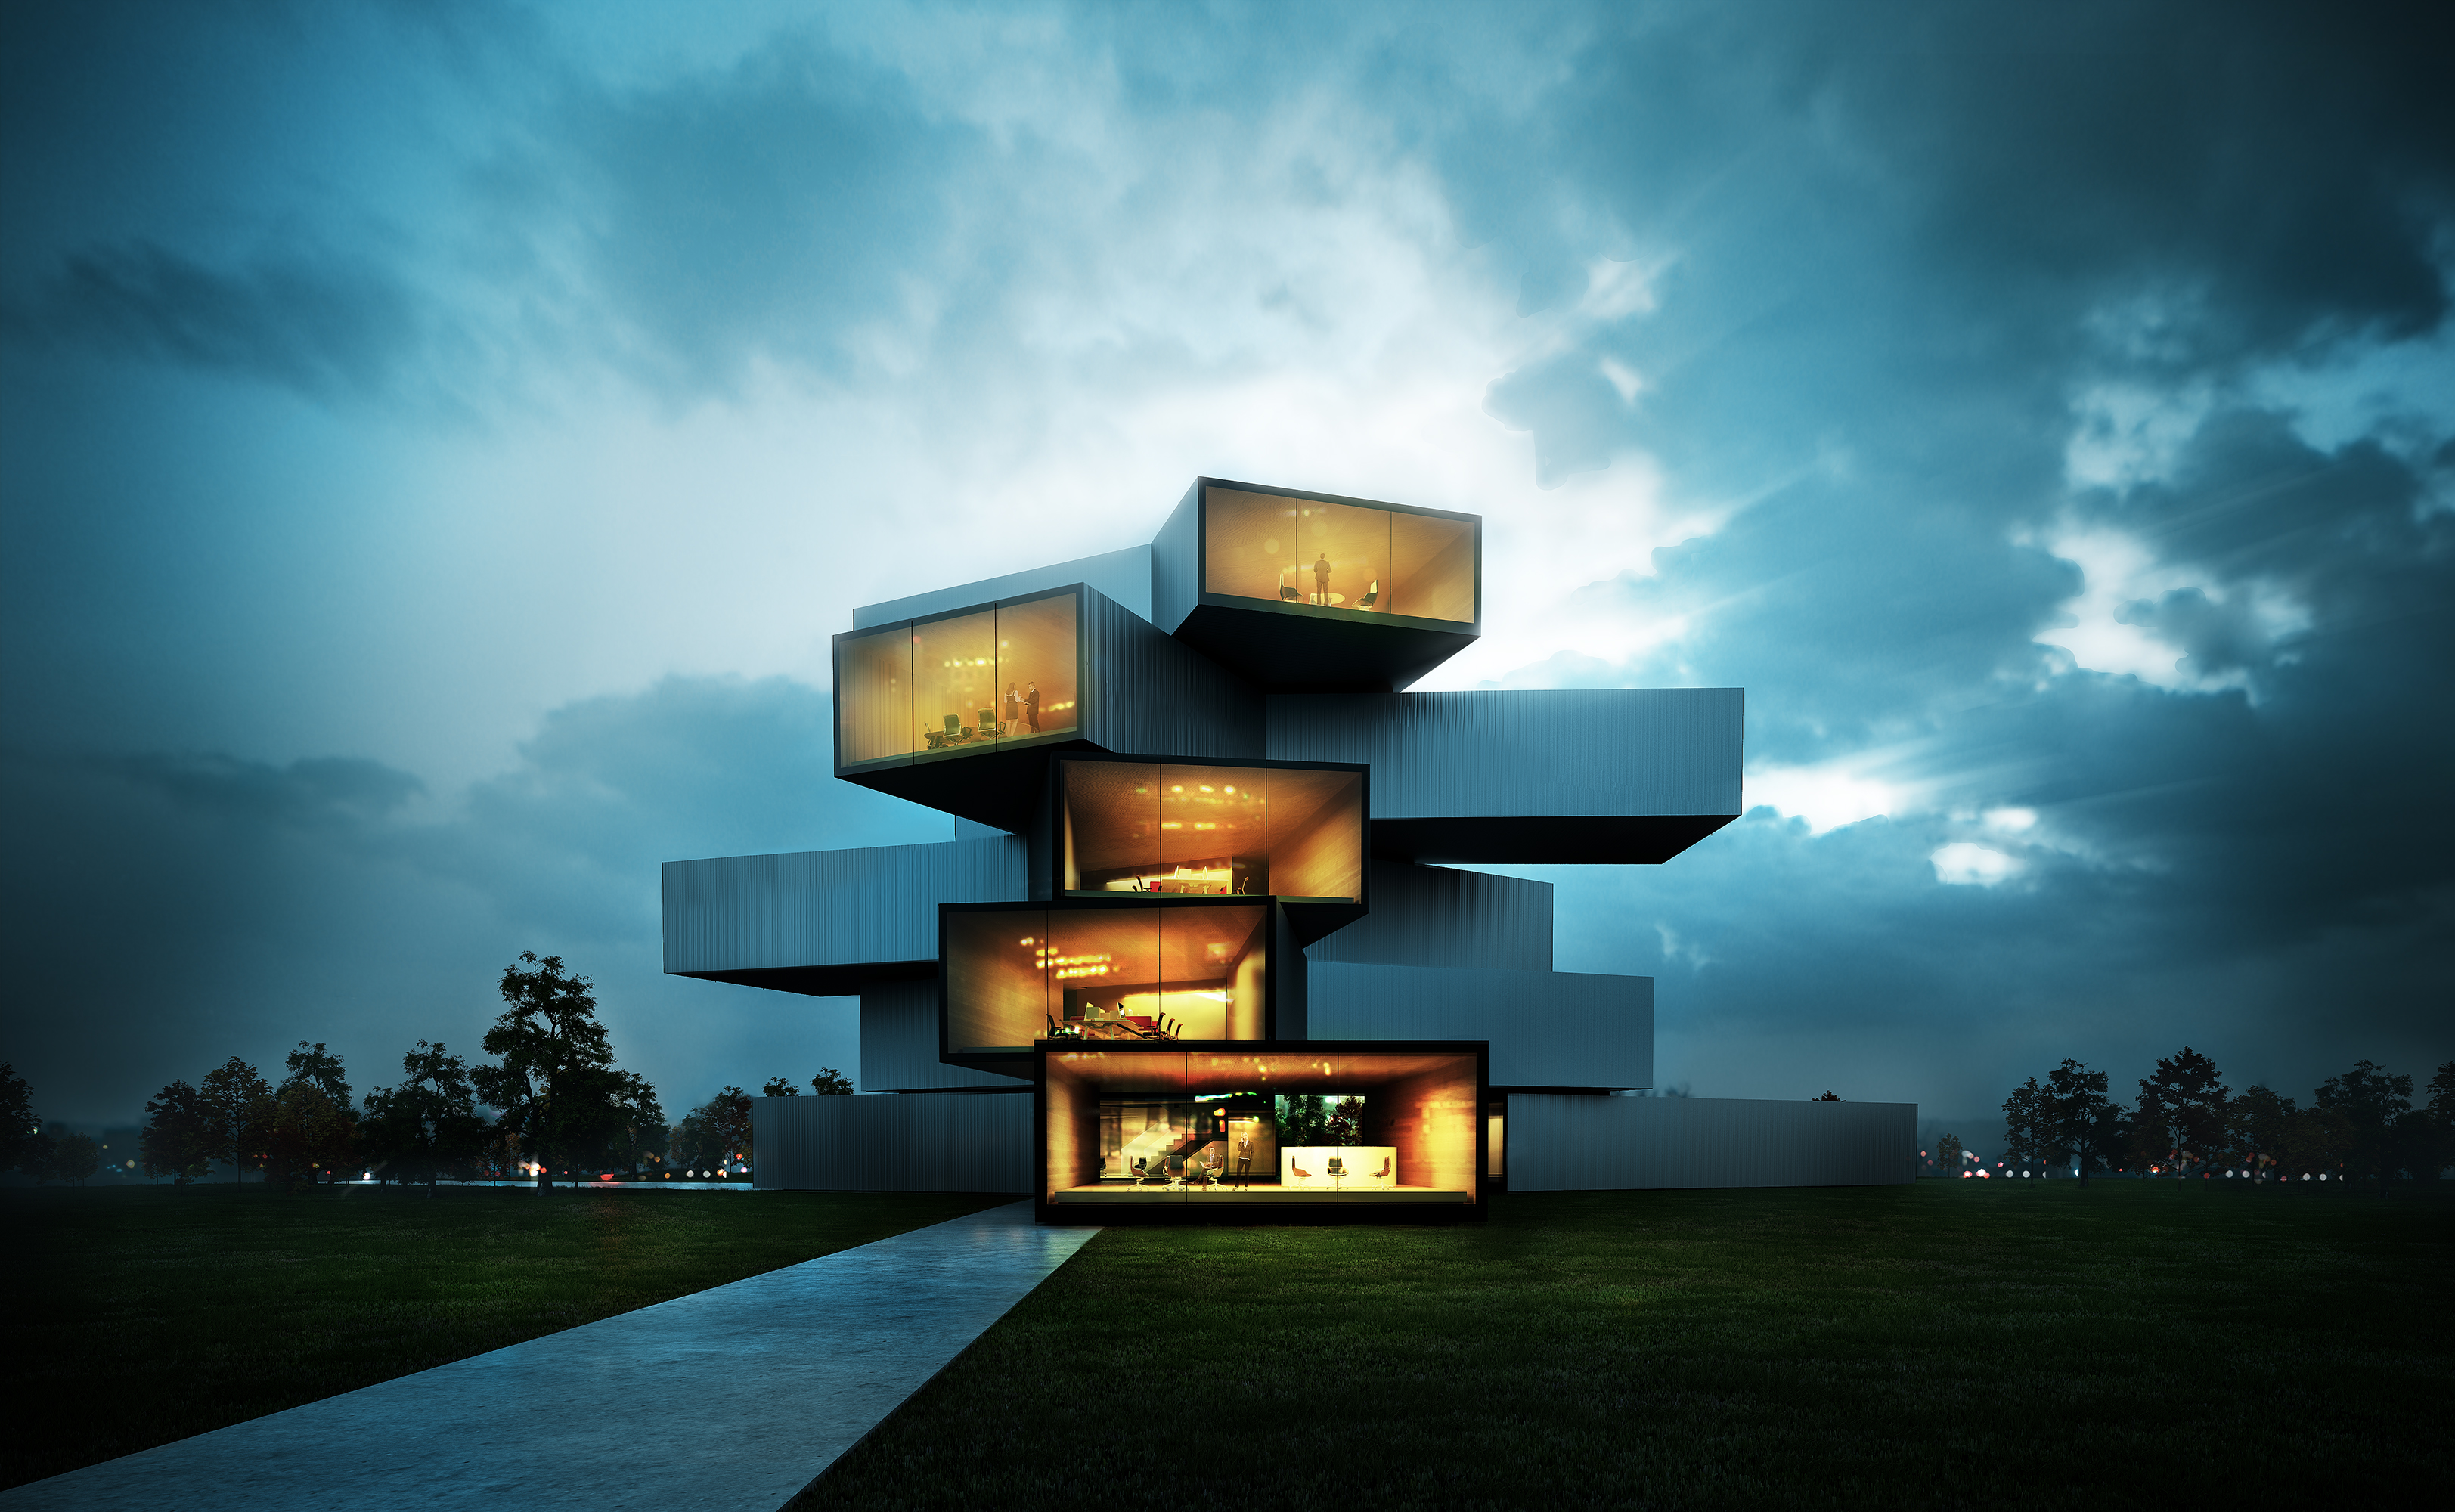 3d architecture visualization project 3d renders arch Contemporary housing